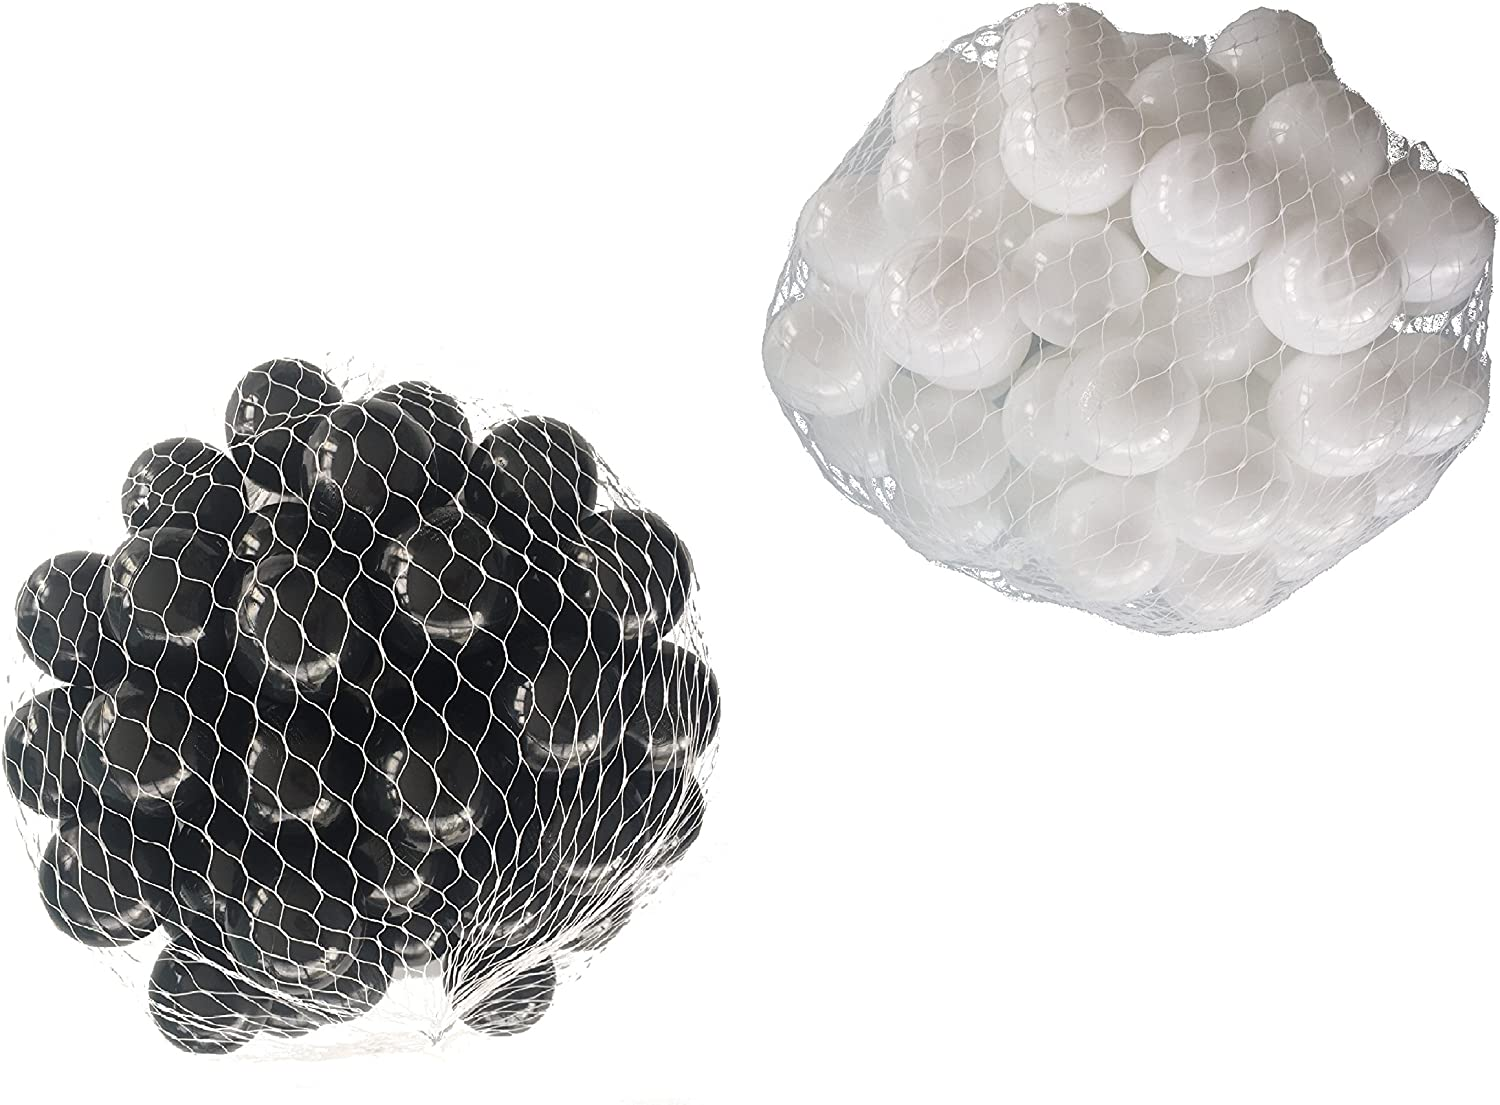 Balls For Ball Pool Mix Set with White and Black